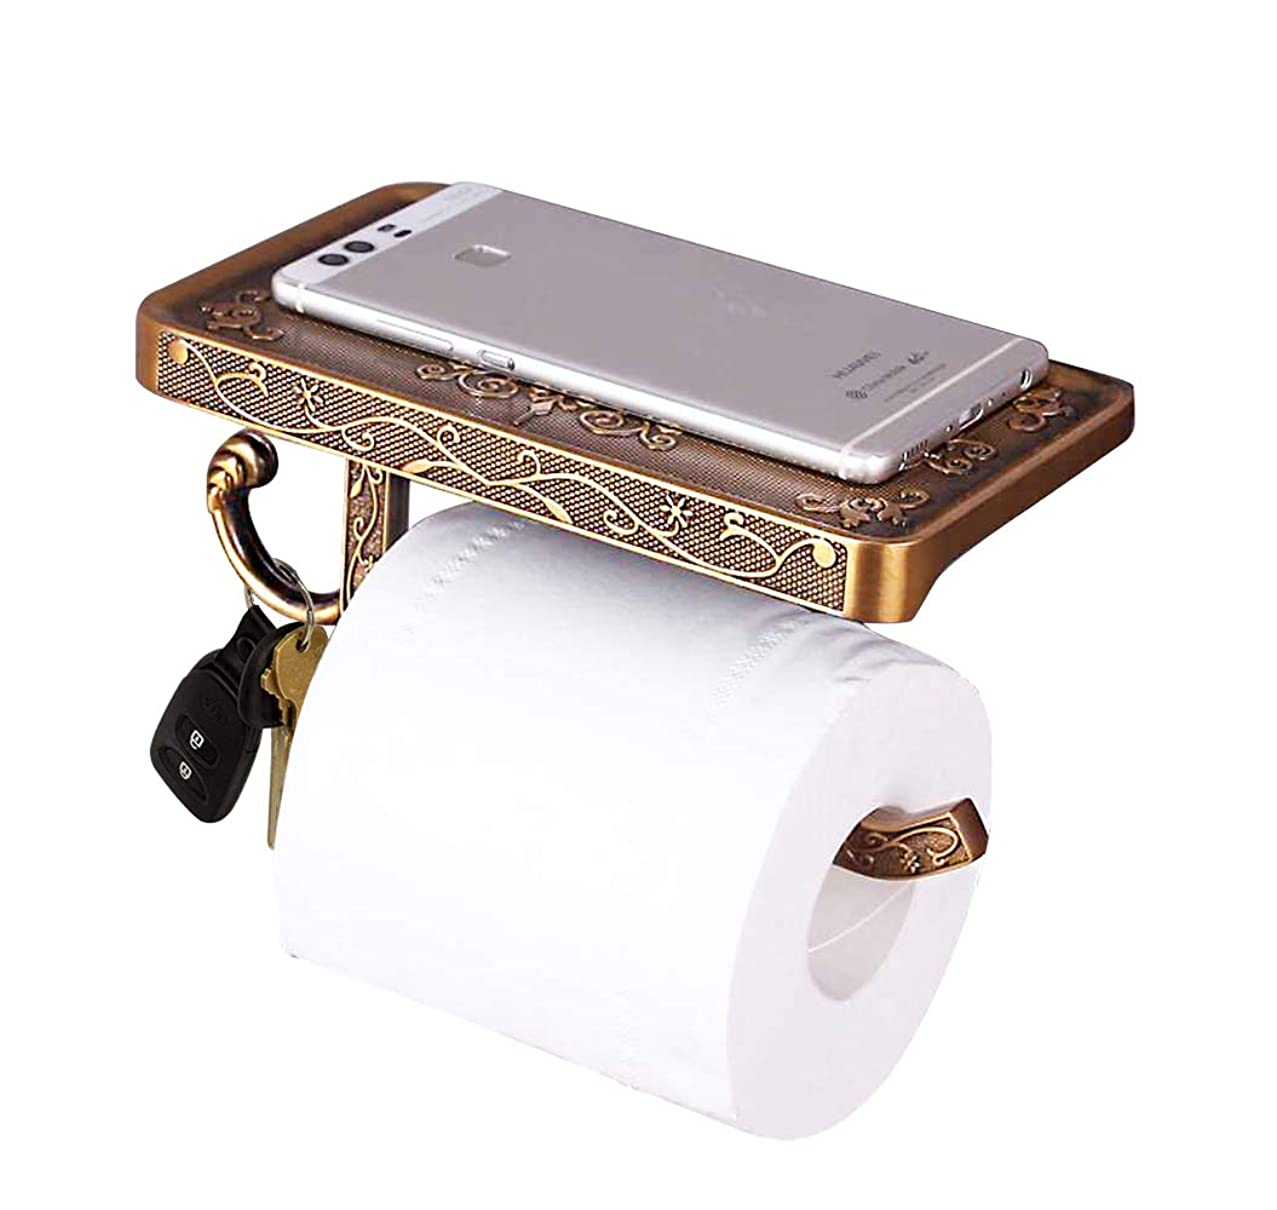 Toilet Paper Holder, Reversible Wall Mount Toilet Paper Holder with Phone Shelf and Key Hook, Vintage Decor Style (Oil Rubbed Bronze)